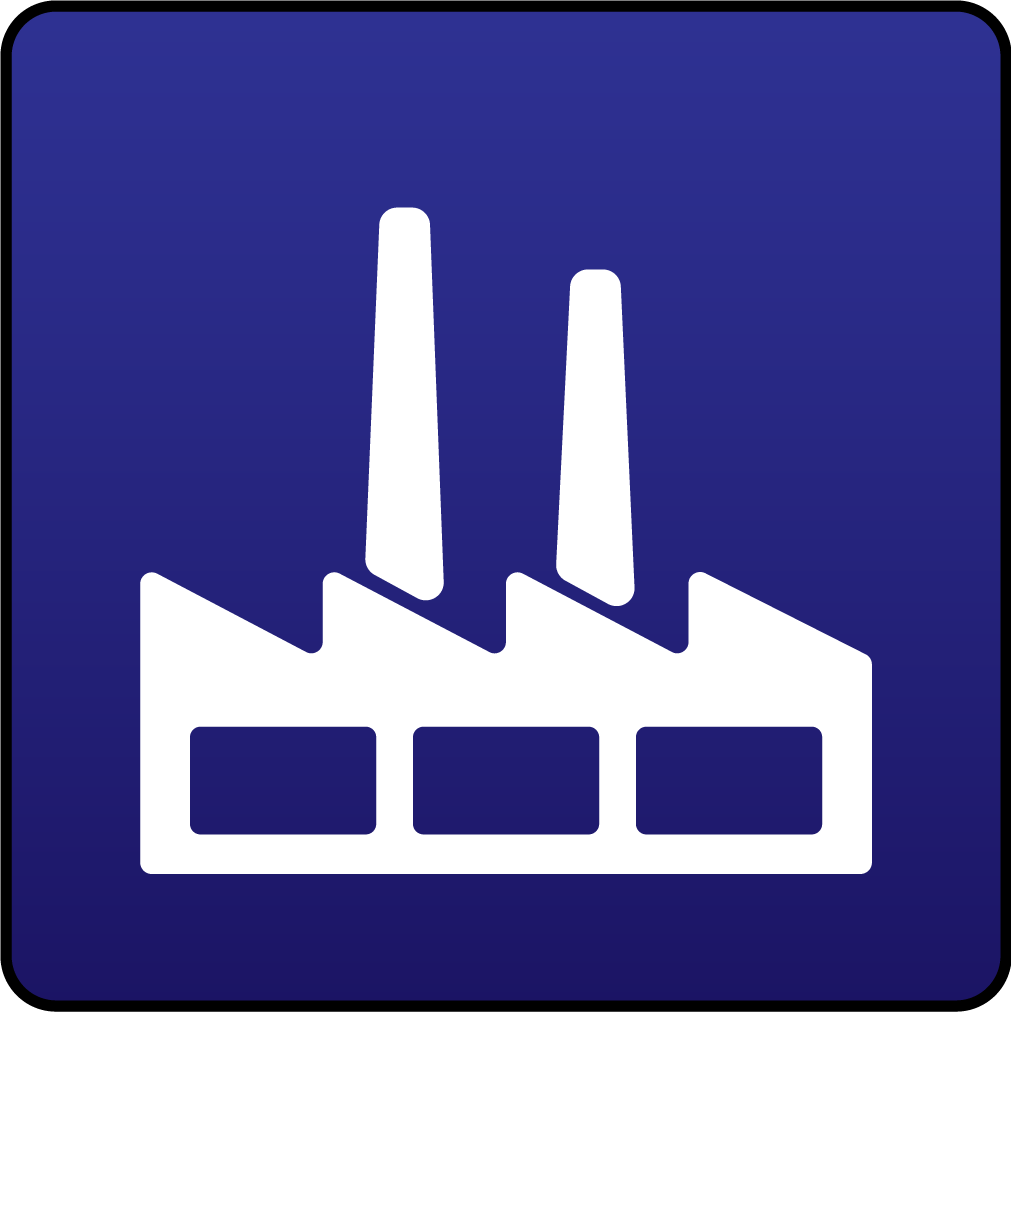 VL CorporateGames logo